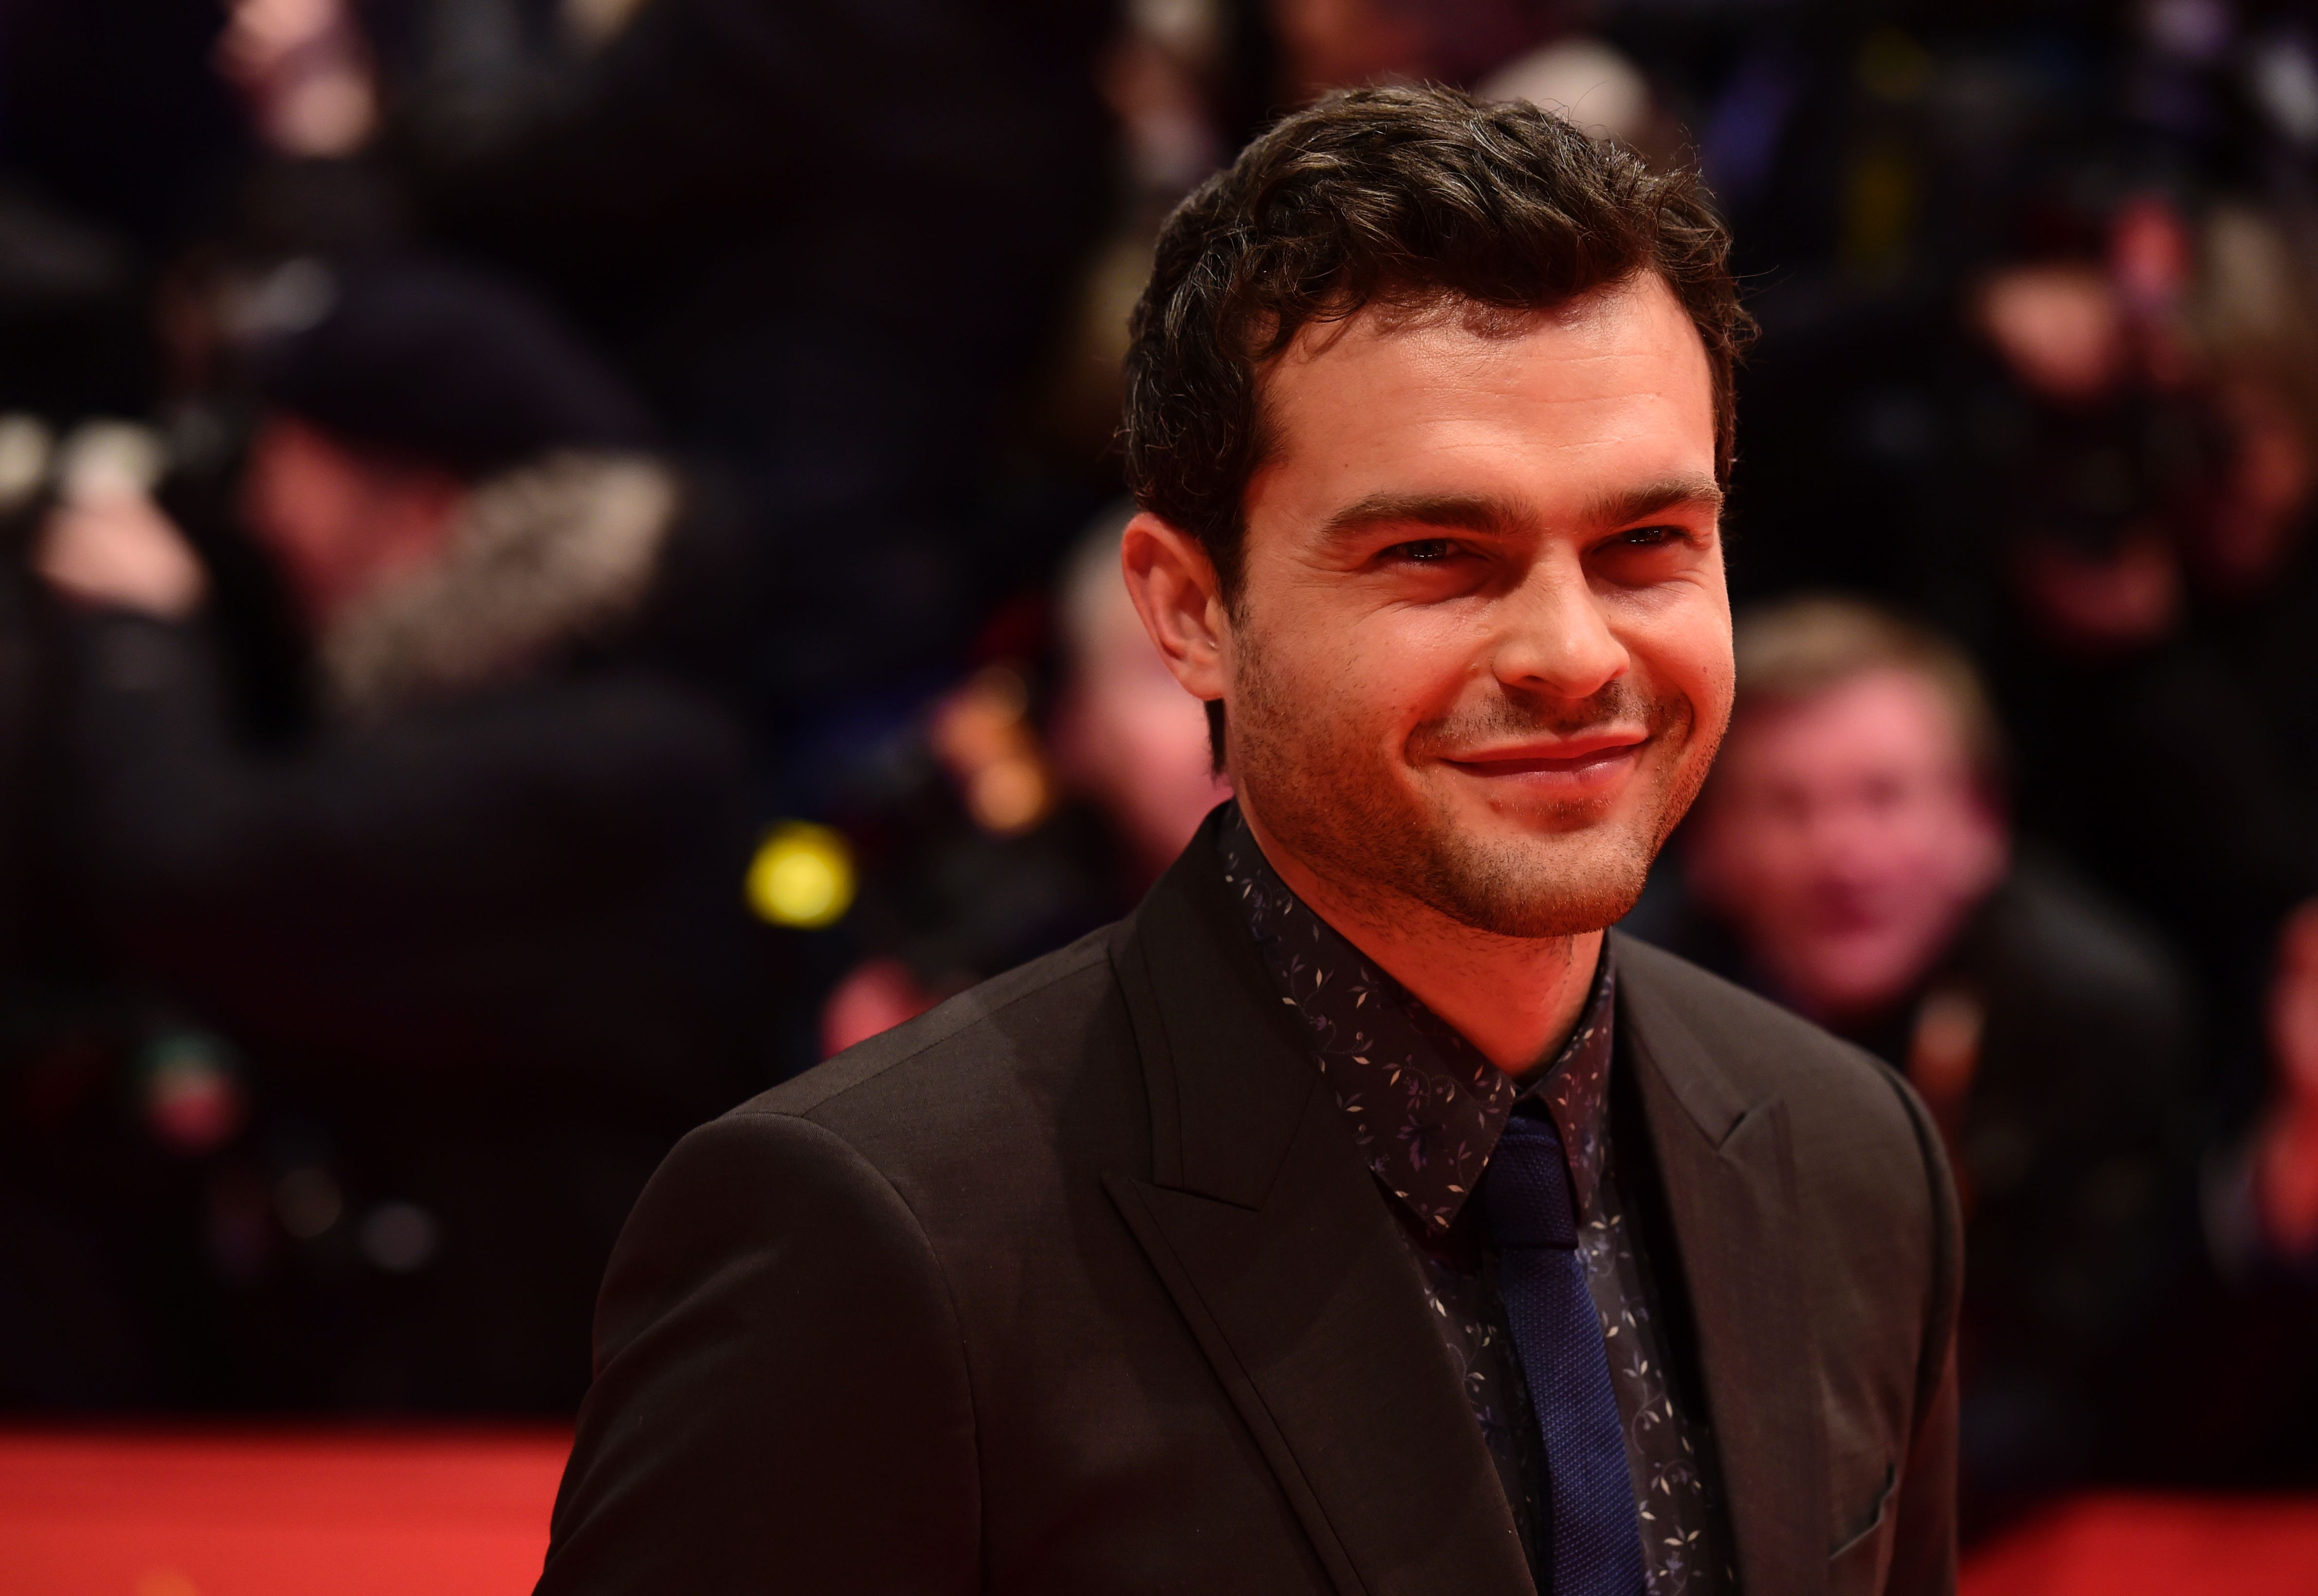 Alden Ehrenreich poses for photographers as he arrives on the red carpet for the film  Hail, Caesar!  screening in Berlin, Feb.11, 2016